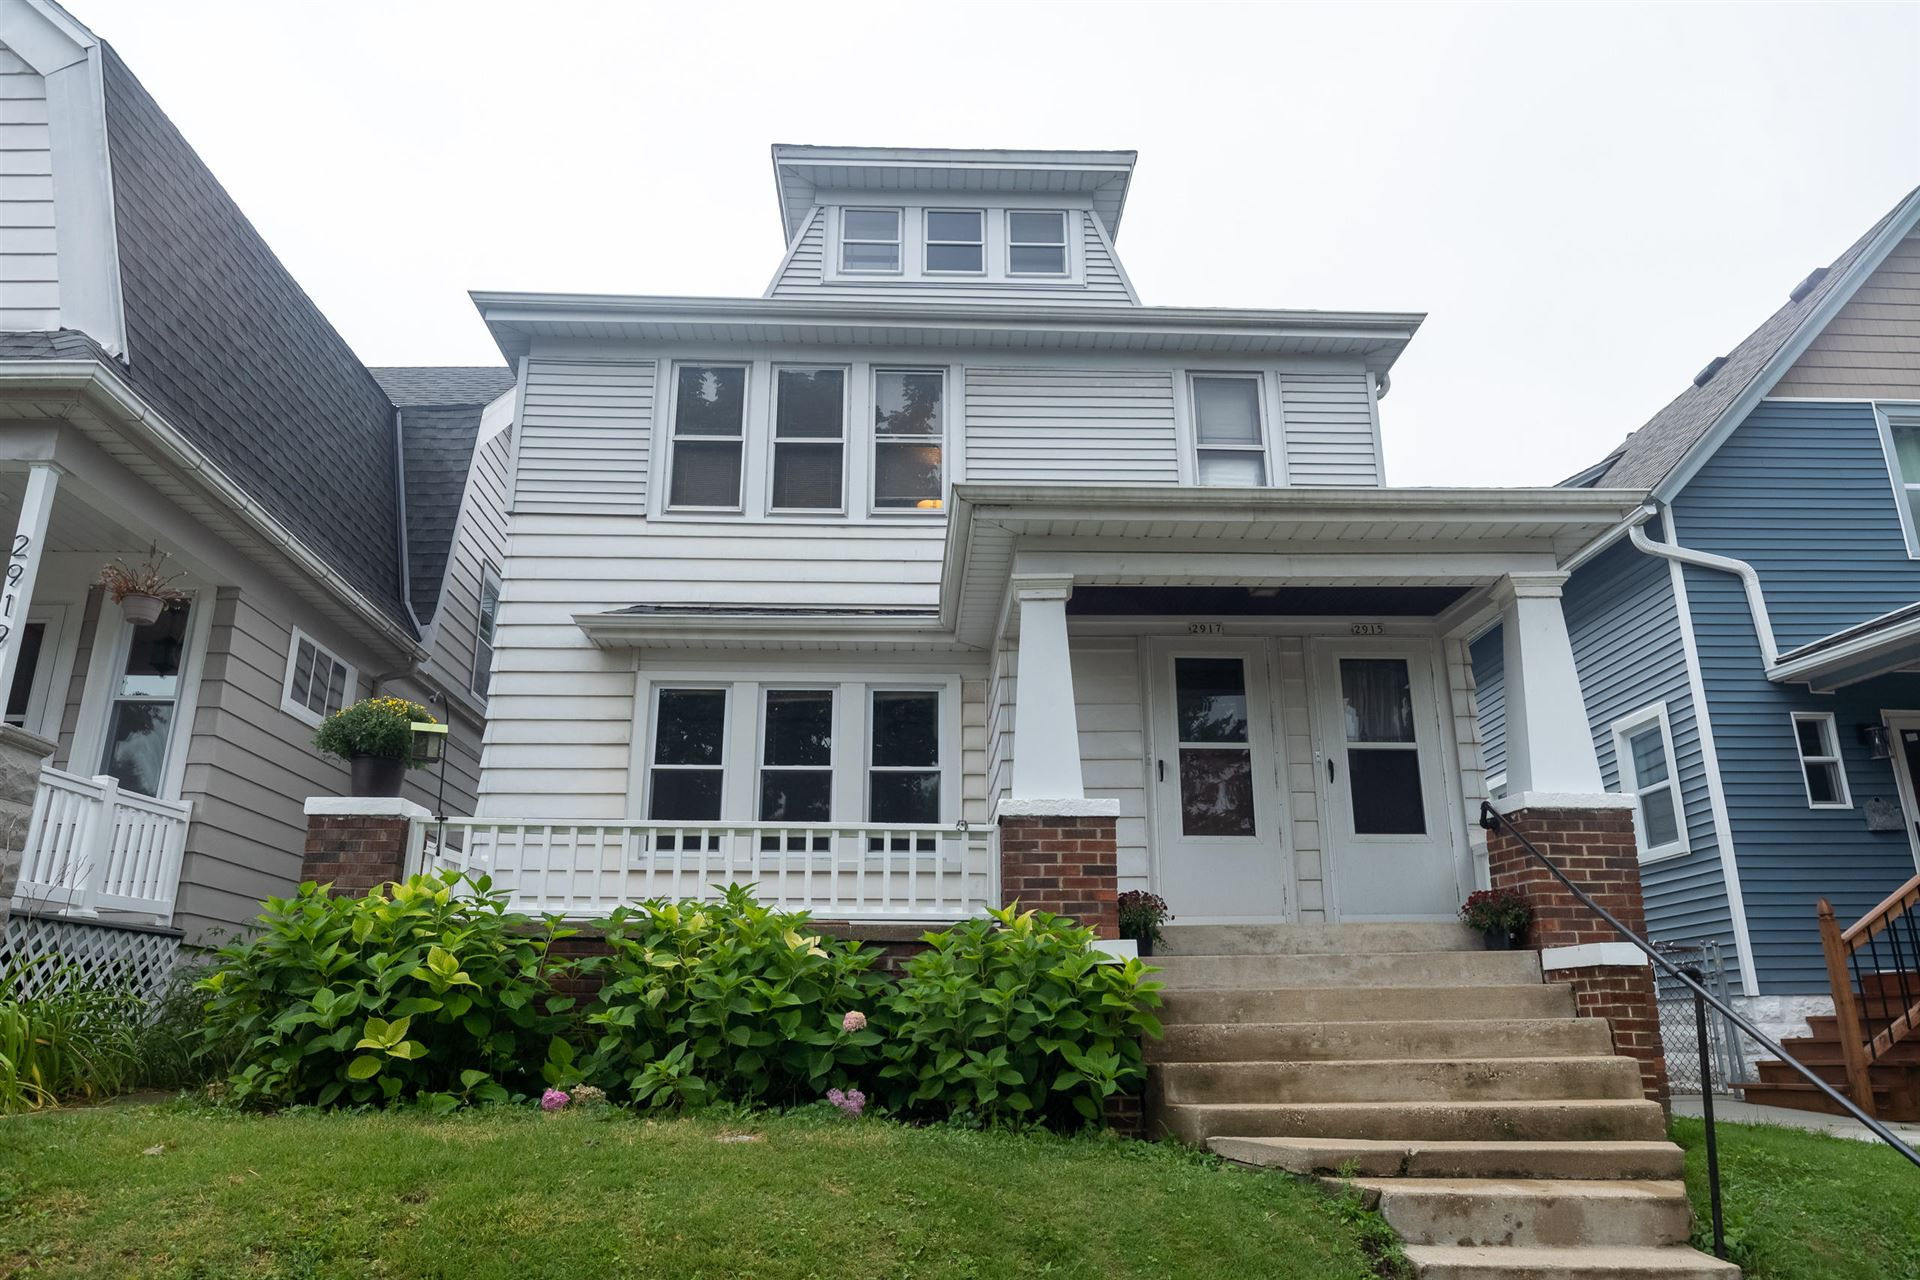 2915 S Delaware Ave #2917, Milwaukee, WI 53207 - #: 1706526